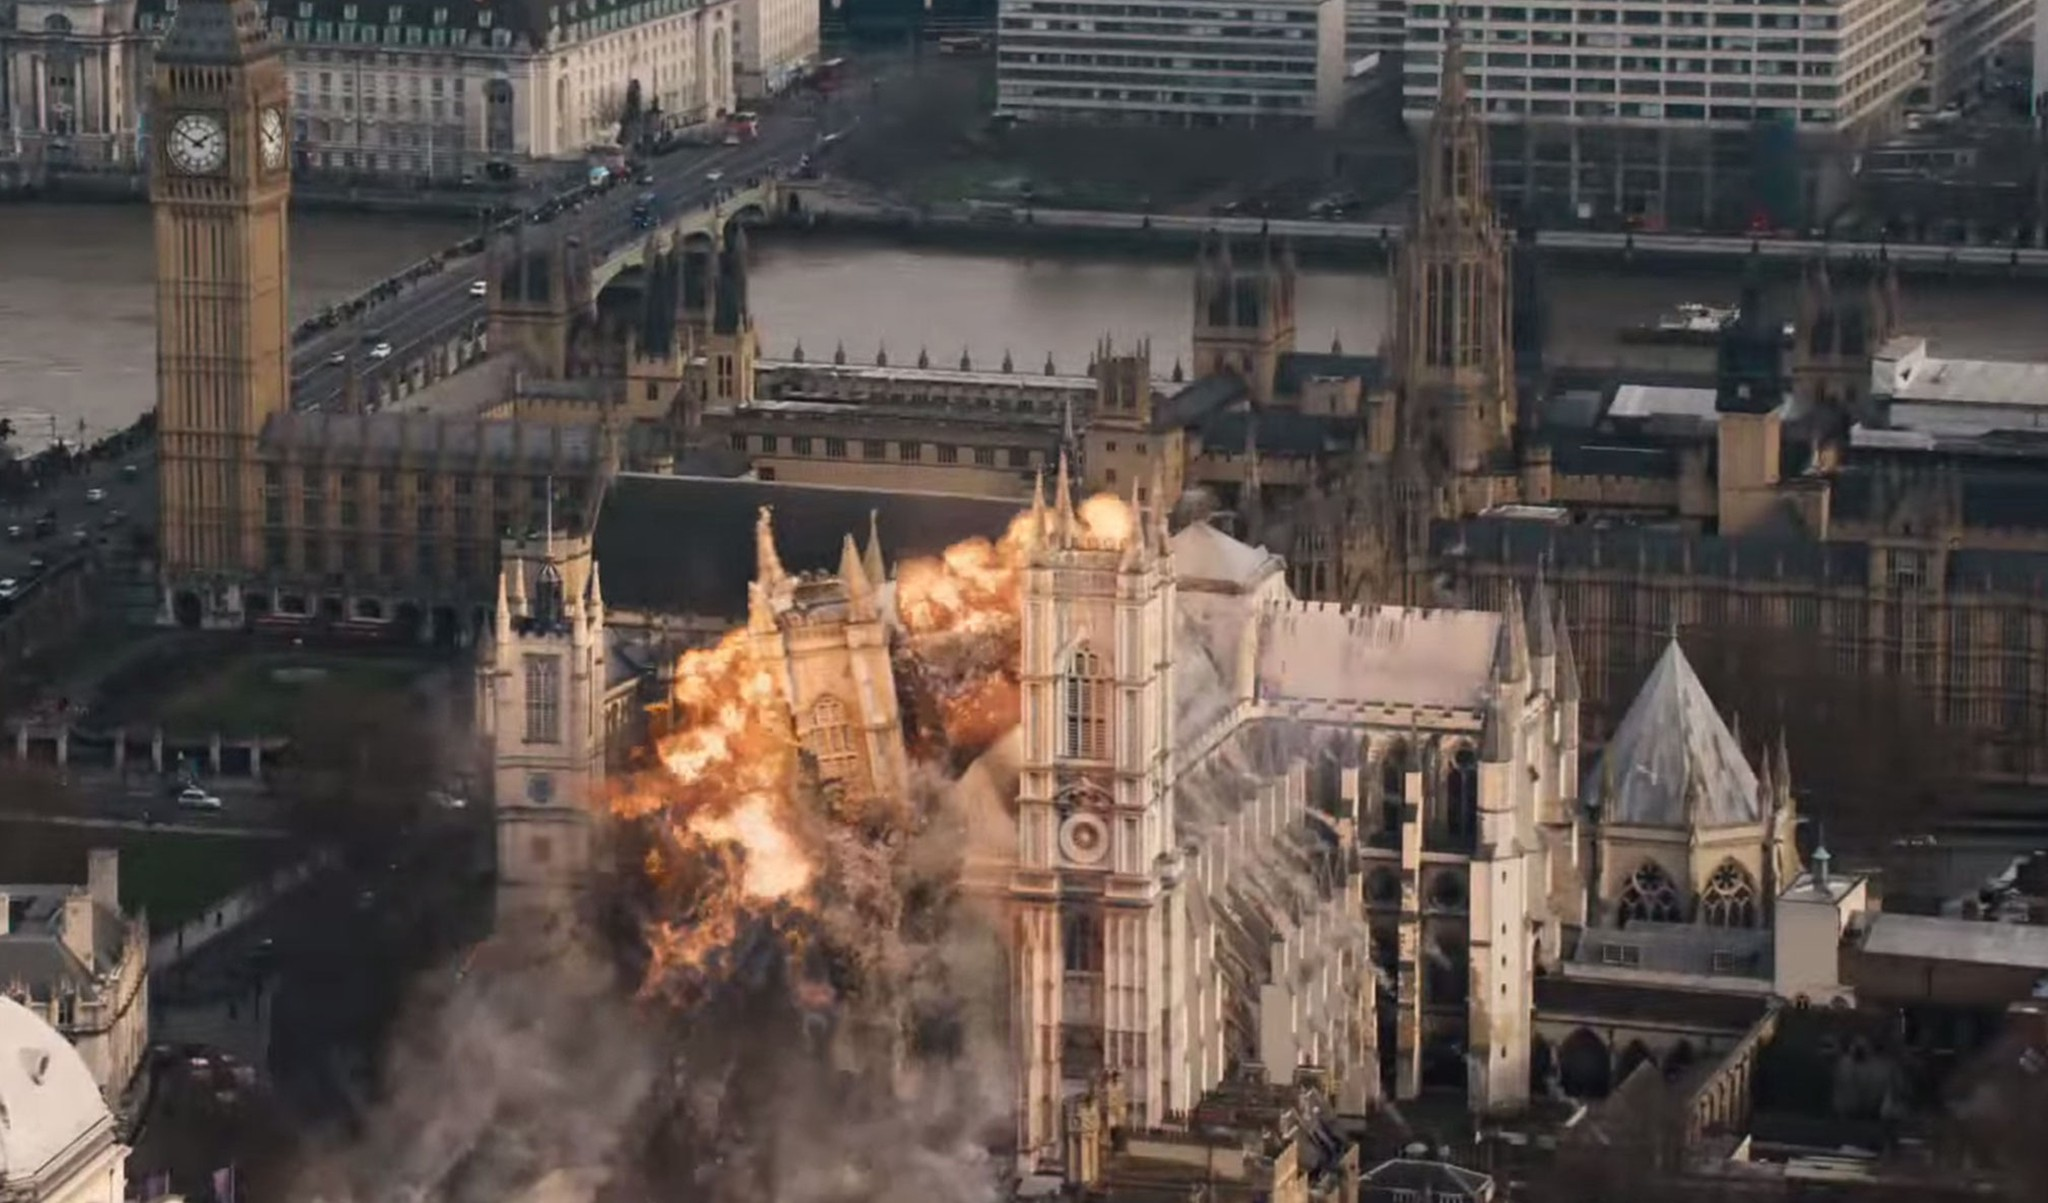 Cool, blow up some landmarks like Westminster Abbey. Shocking!